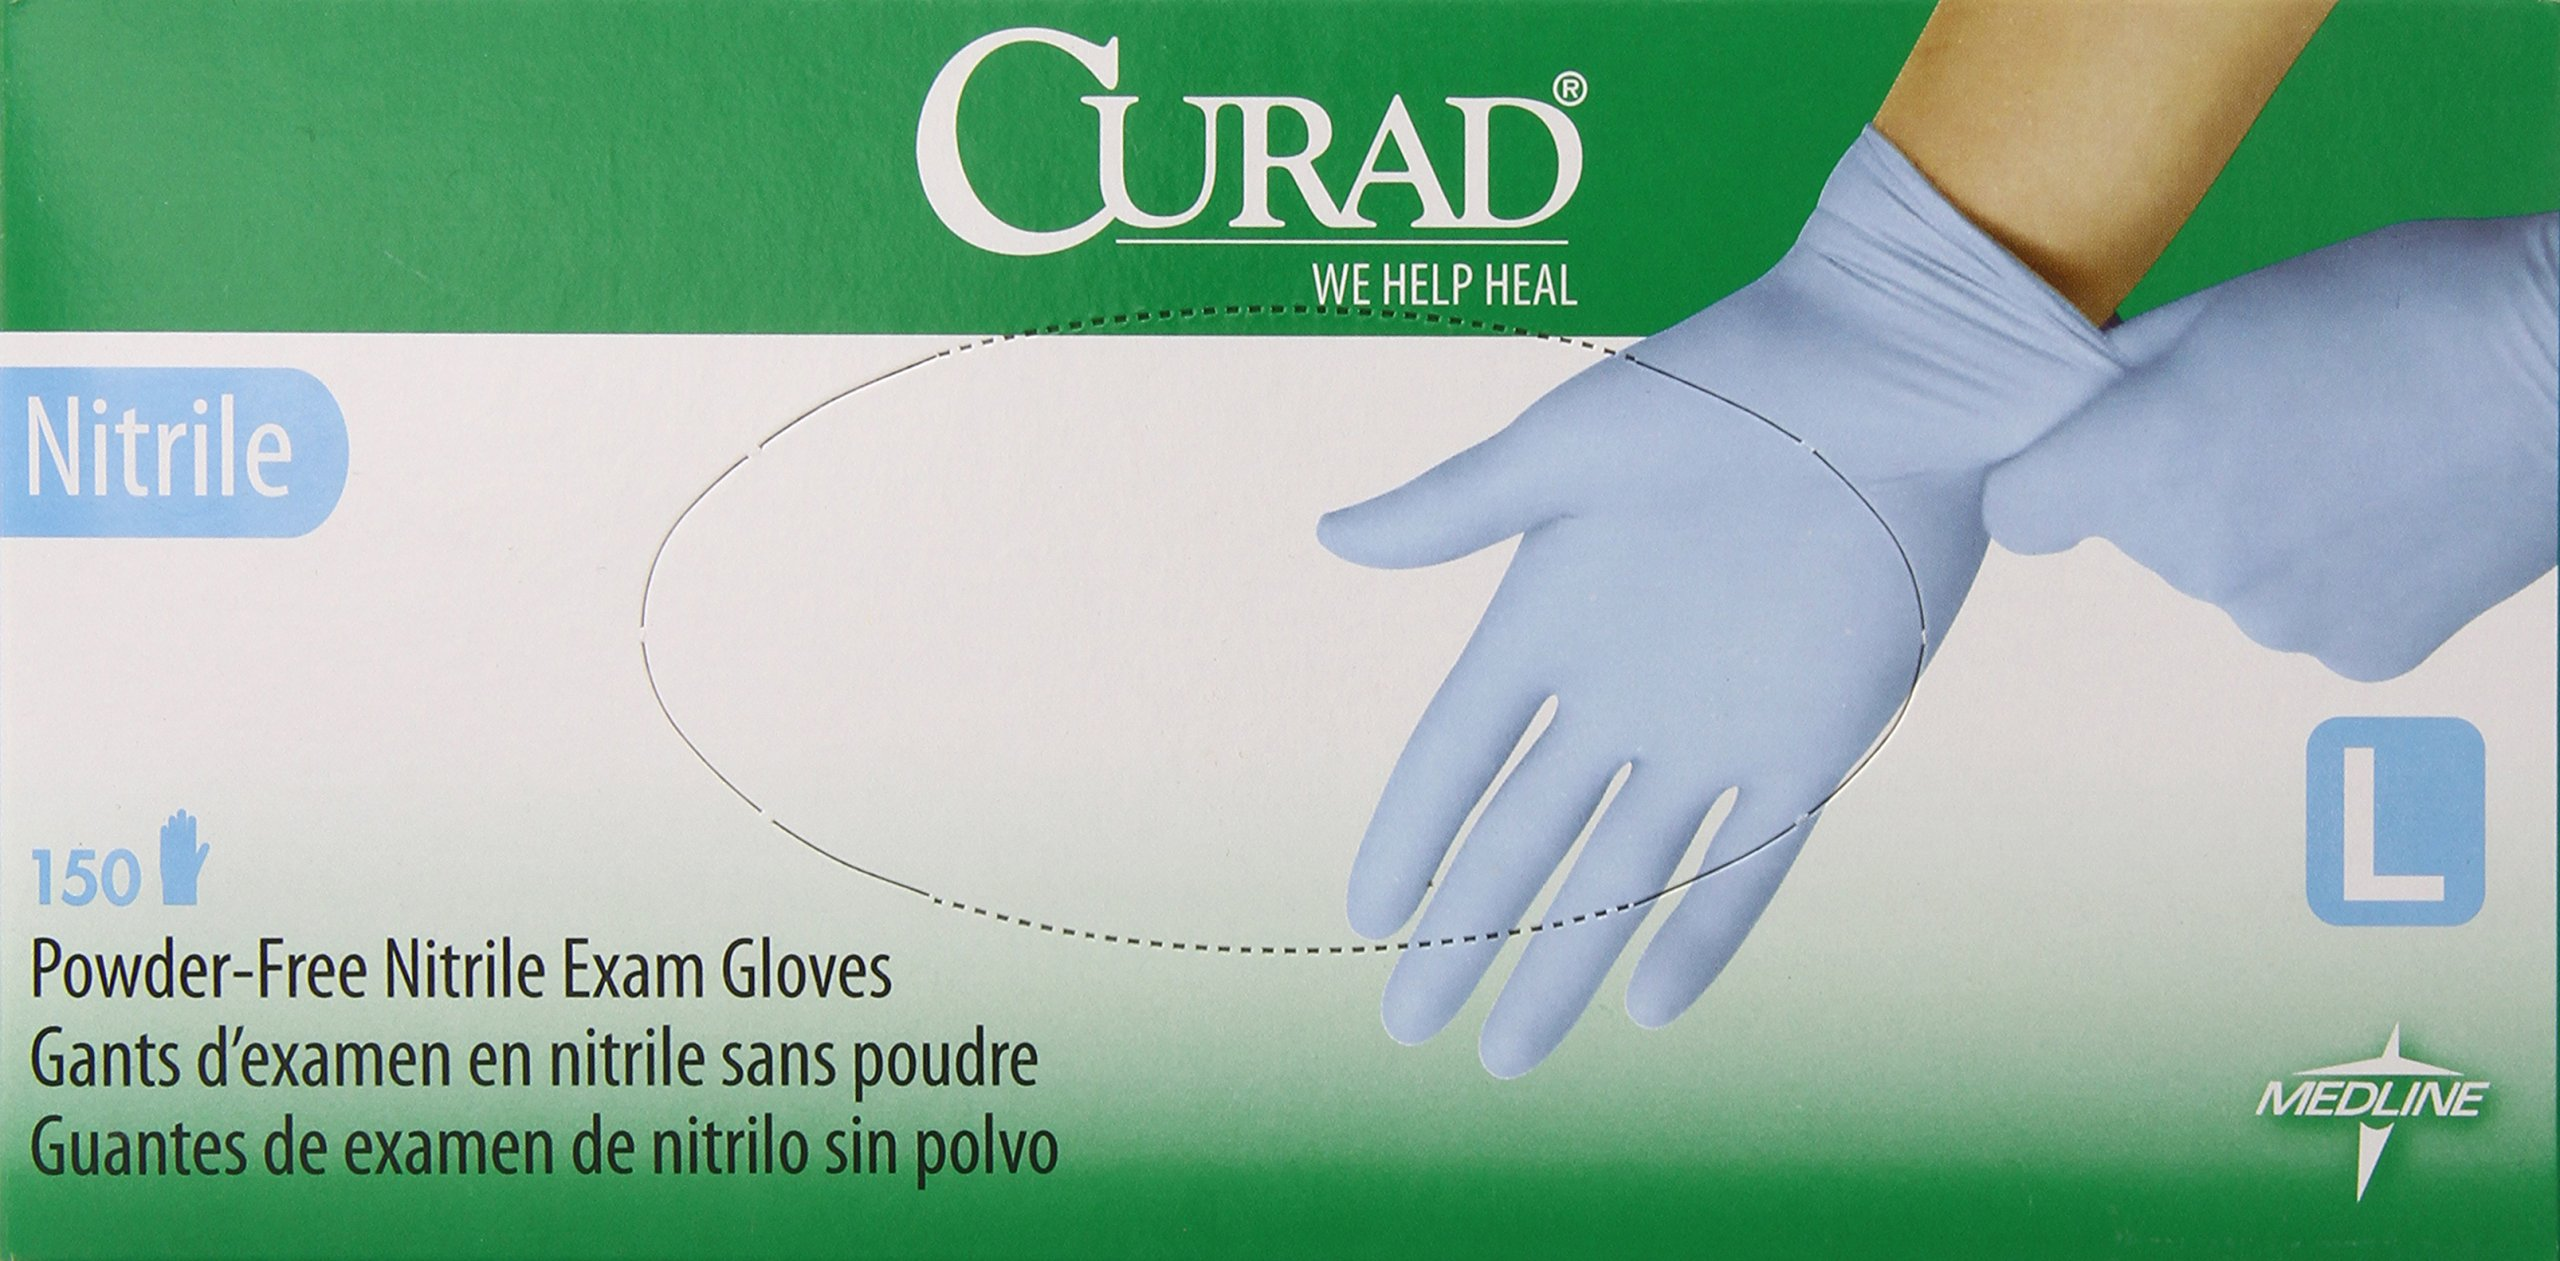 Curad Powder-Free Nitrile, Large, 150 Count